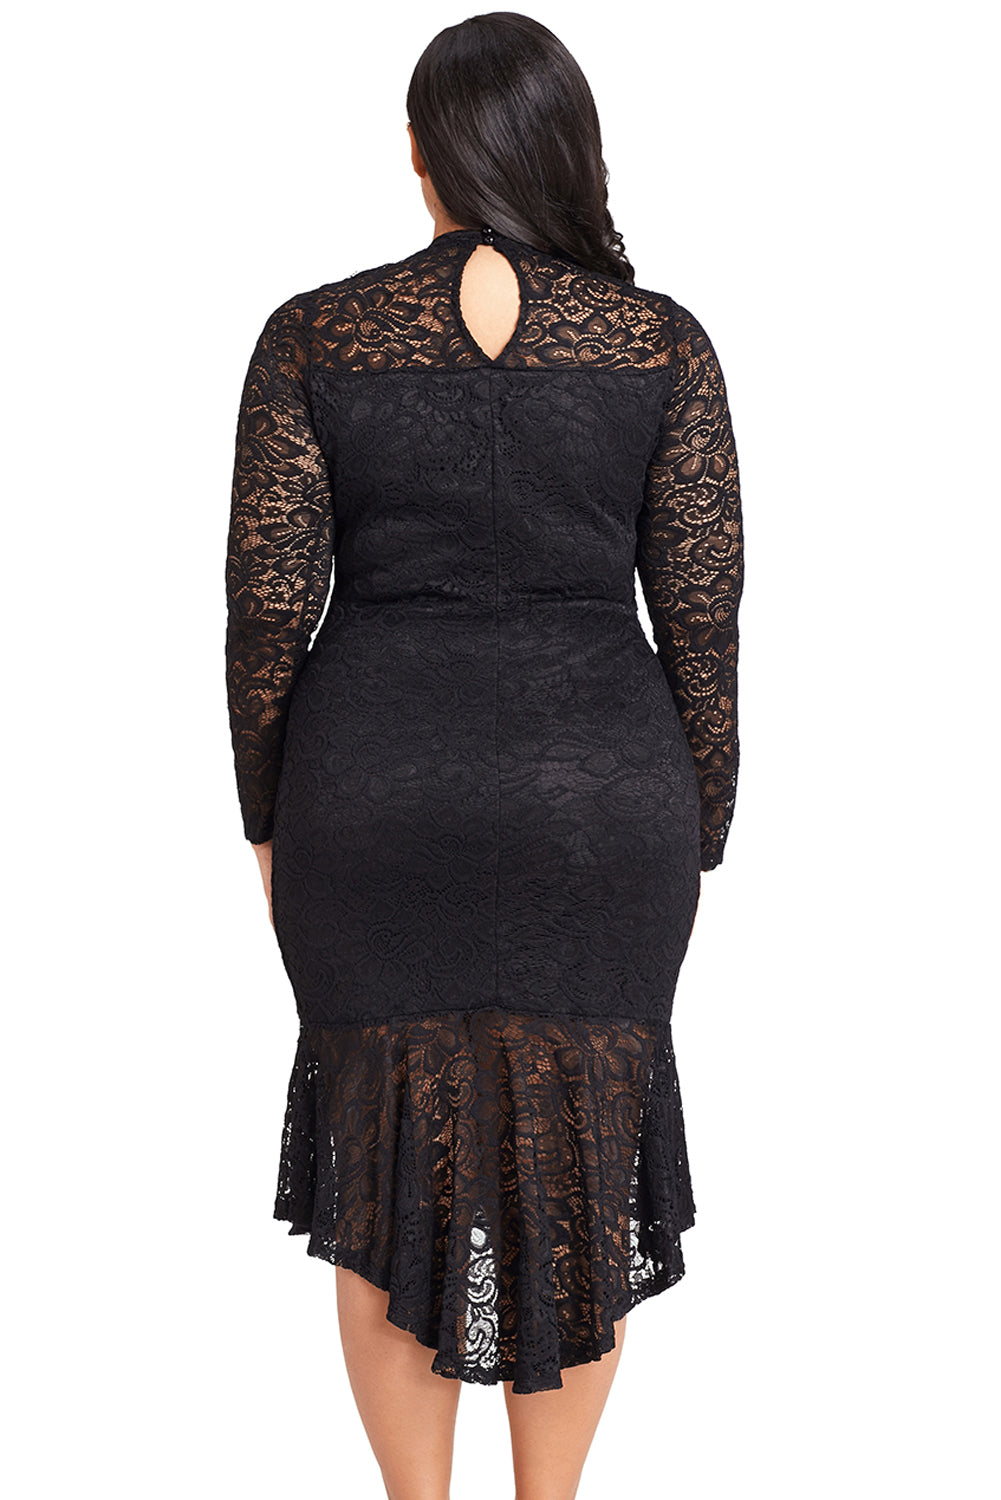 Black Plus Size Floral Lace Hi-Lo Mermaid Dress LAVELIQ - Laveliqus